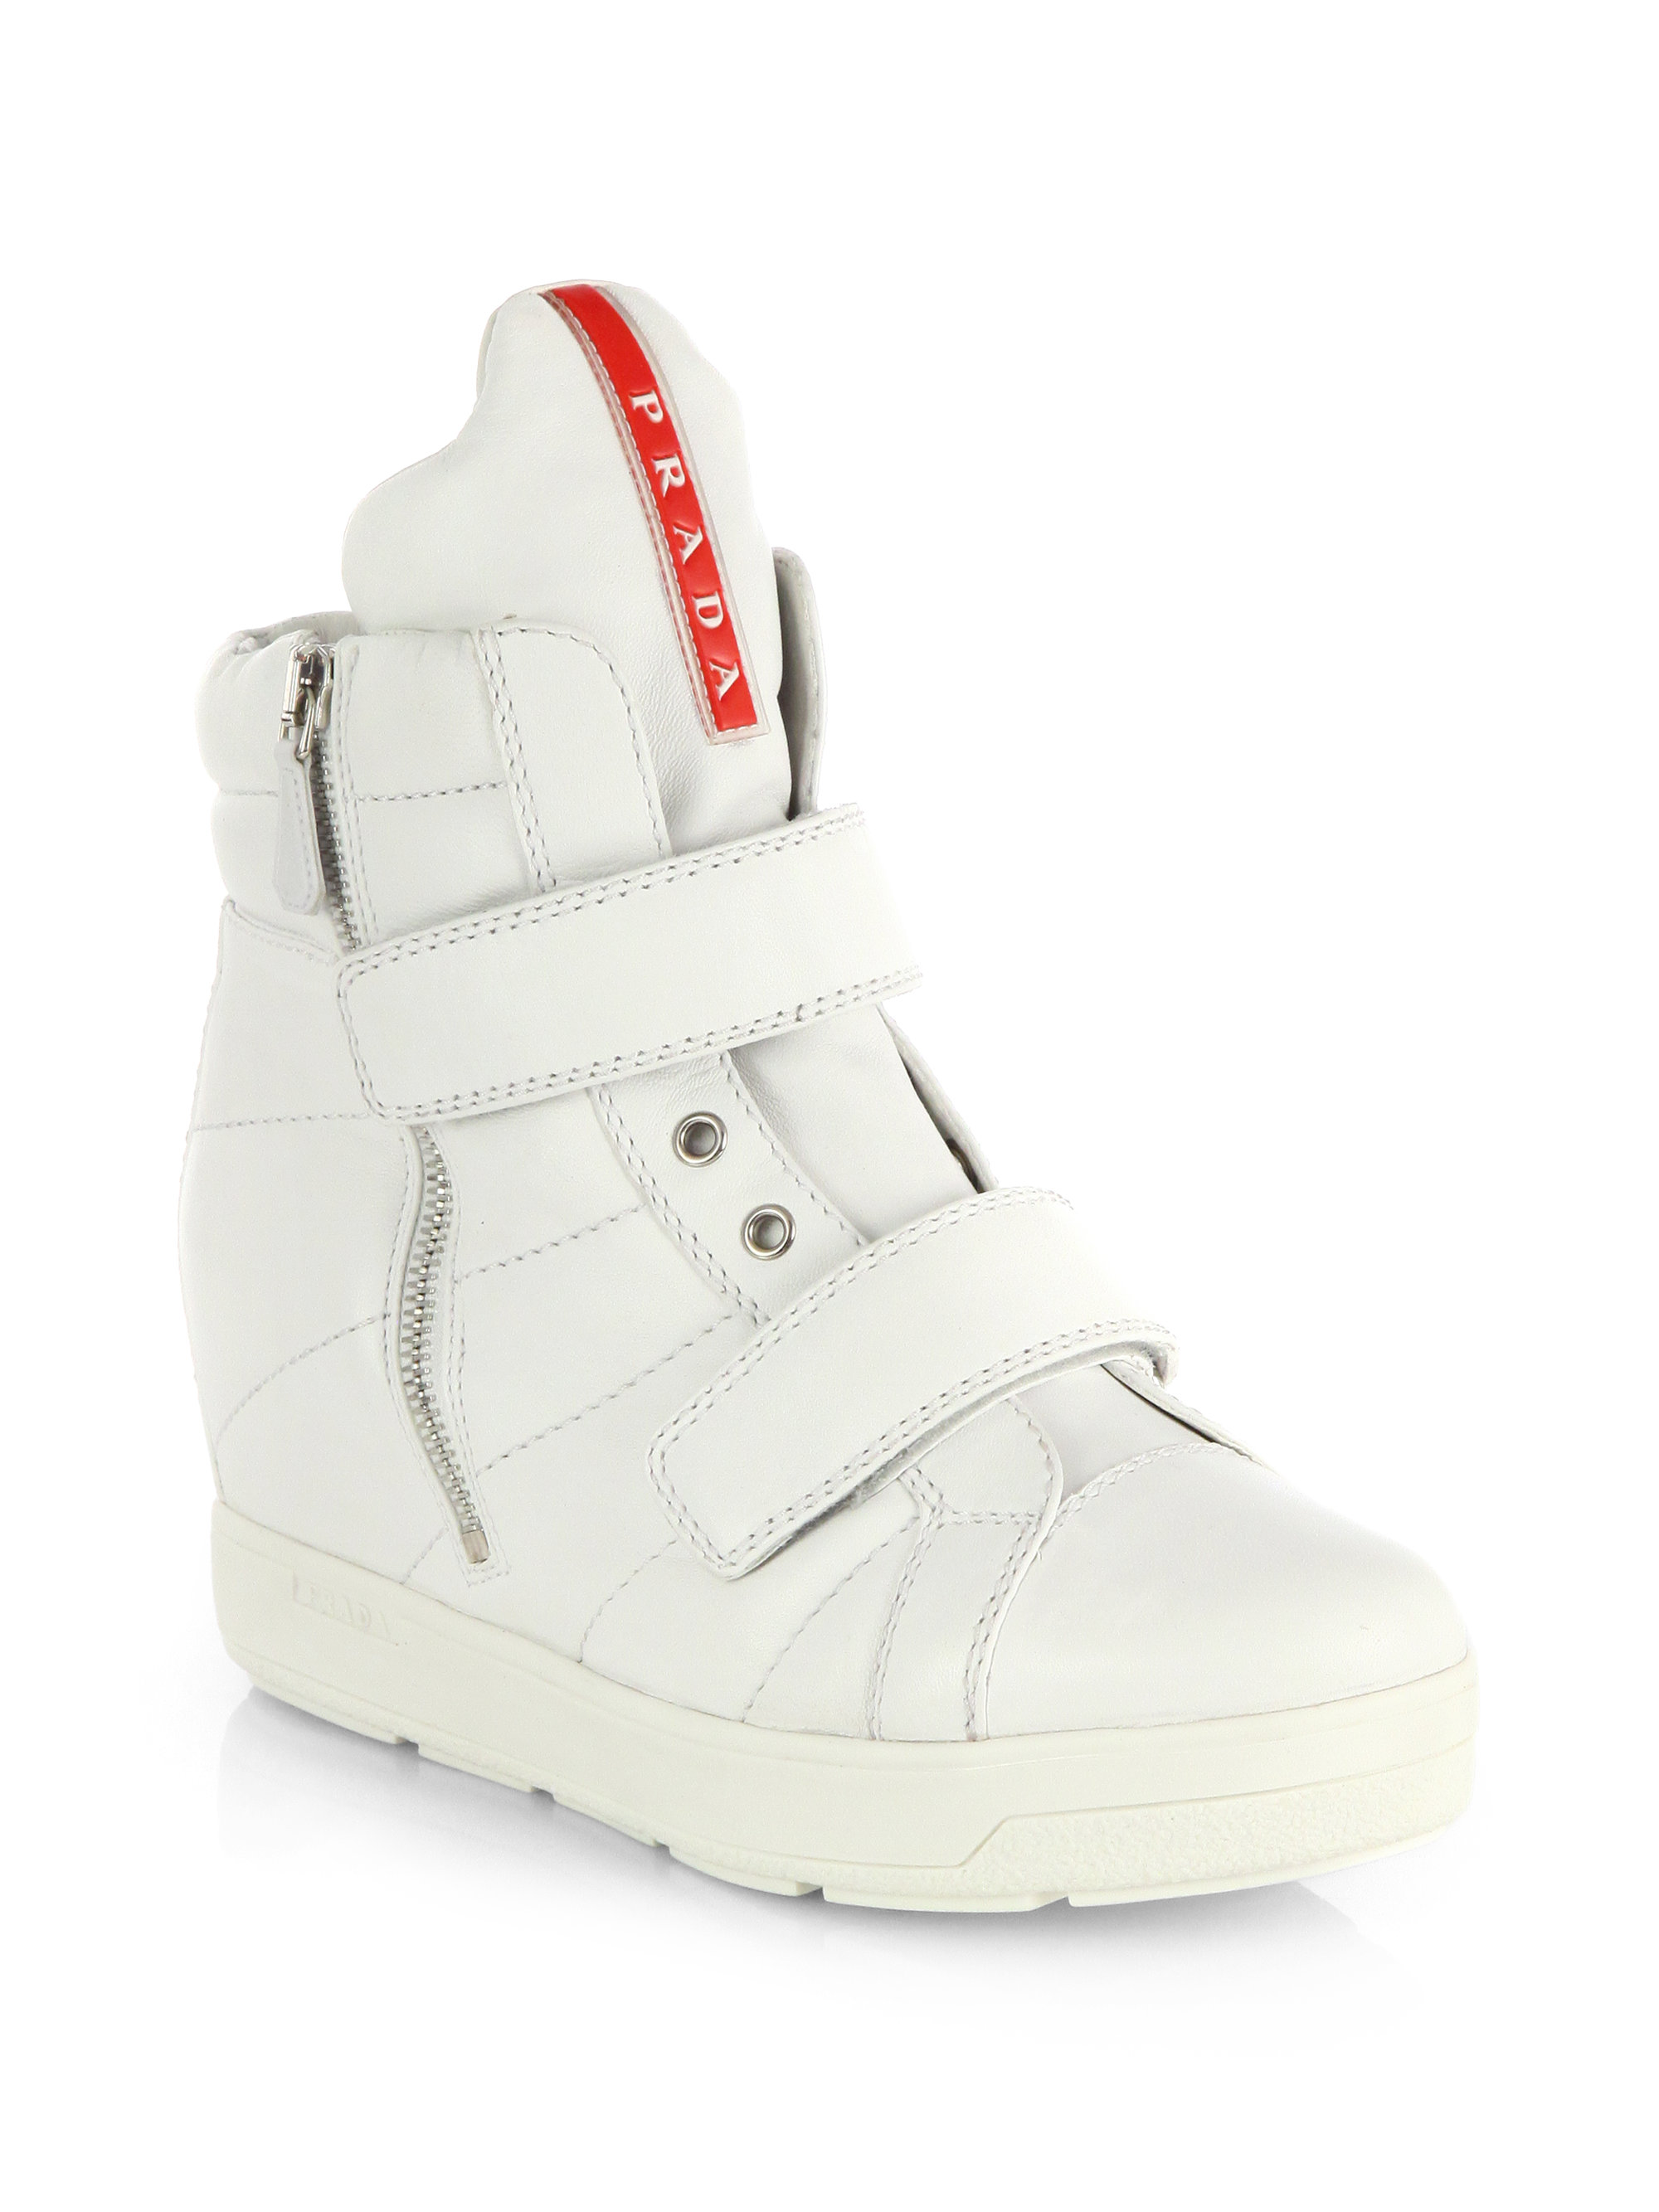 41cb6adc3a2 ... best price lyst prada quilted leather wedge sneakers in white 9058f  8c092